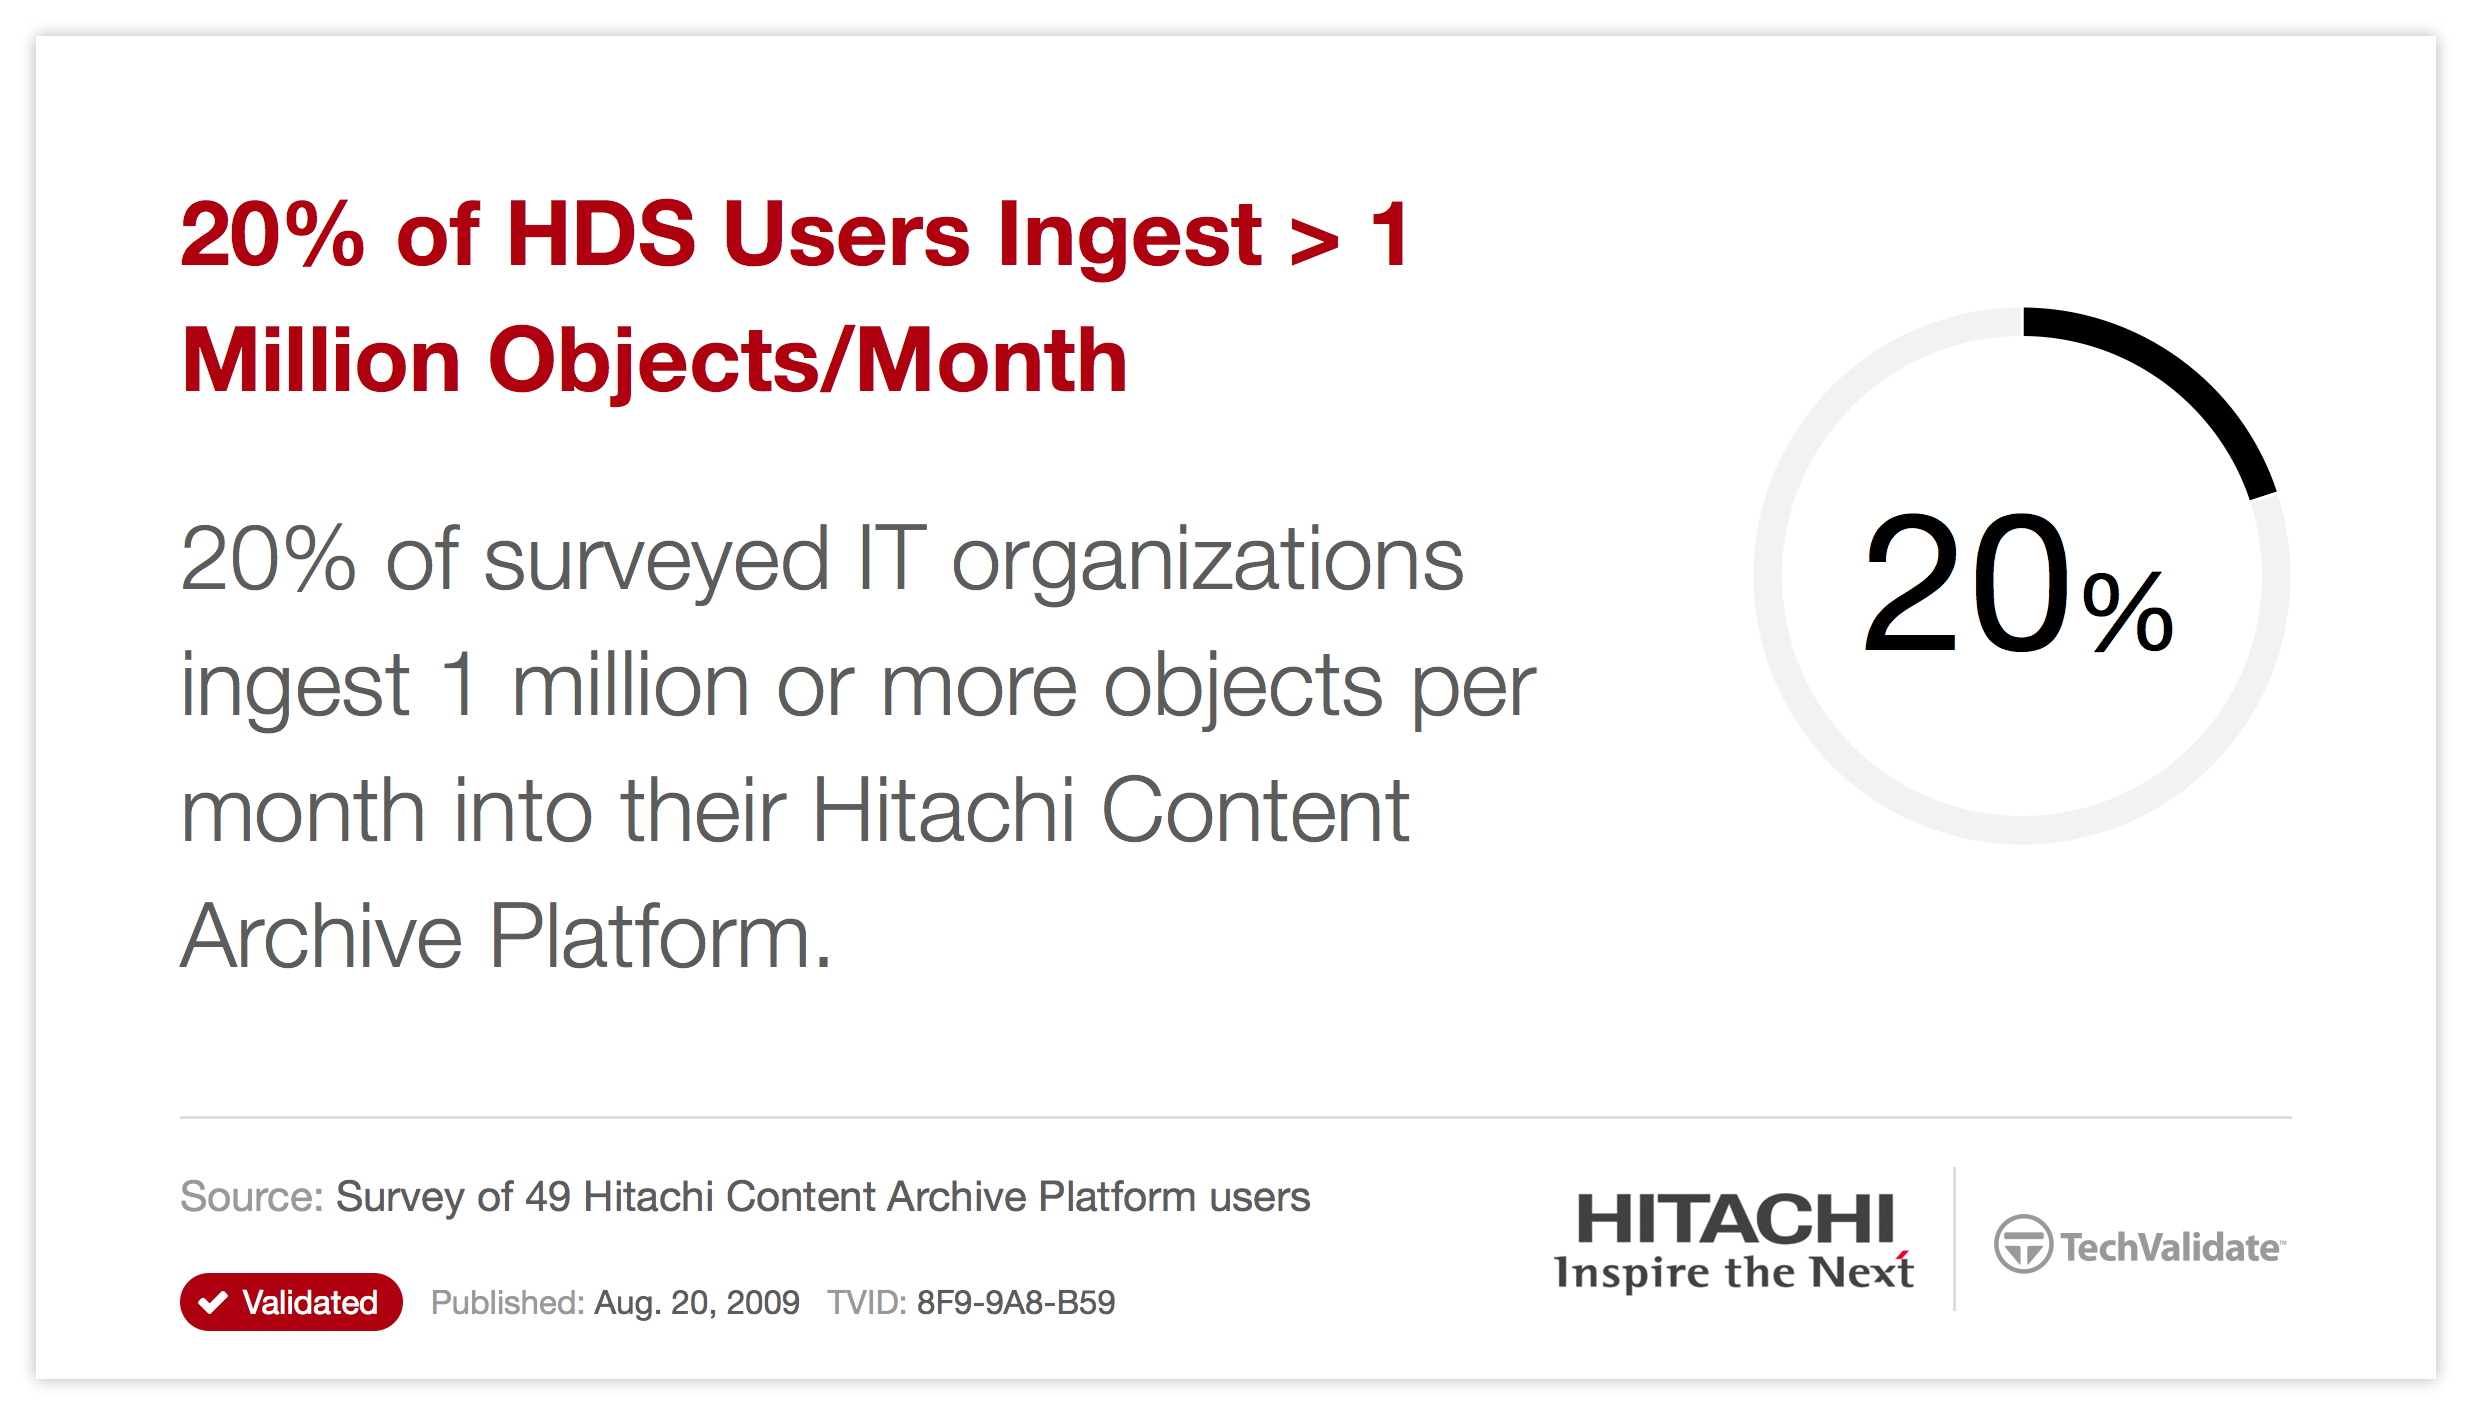 20% of HDS Users Ingest > 1 Million Objects/Month